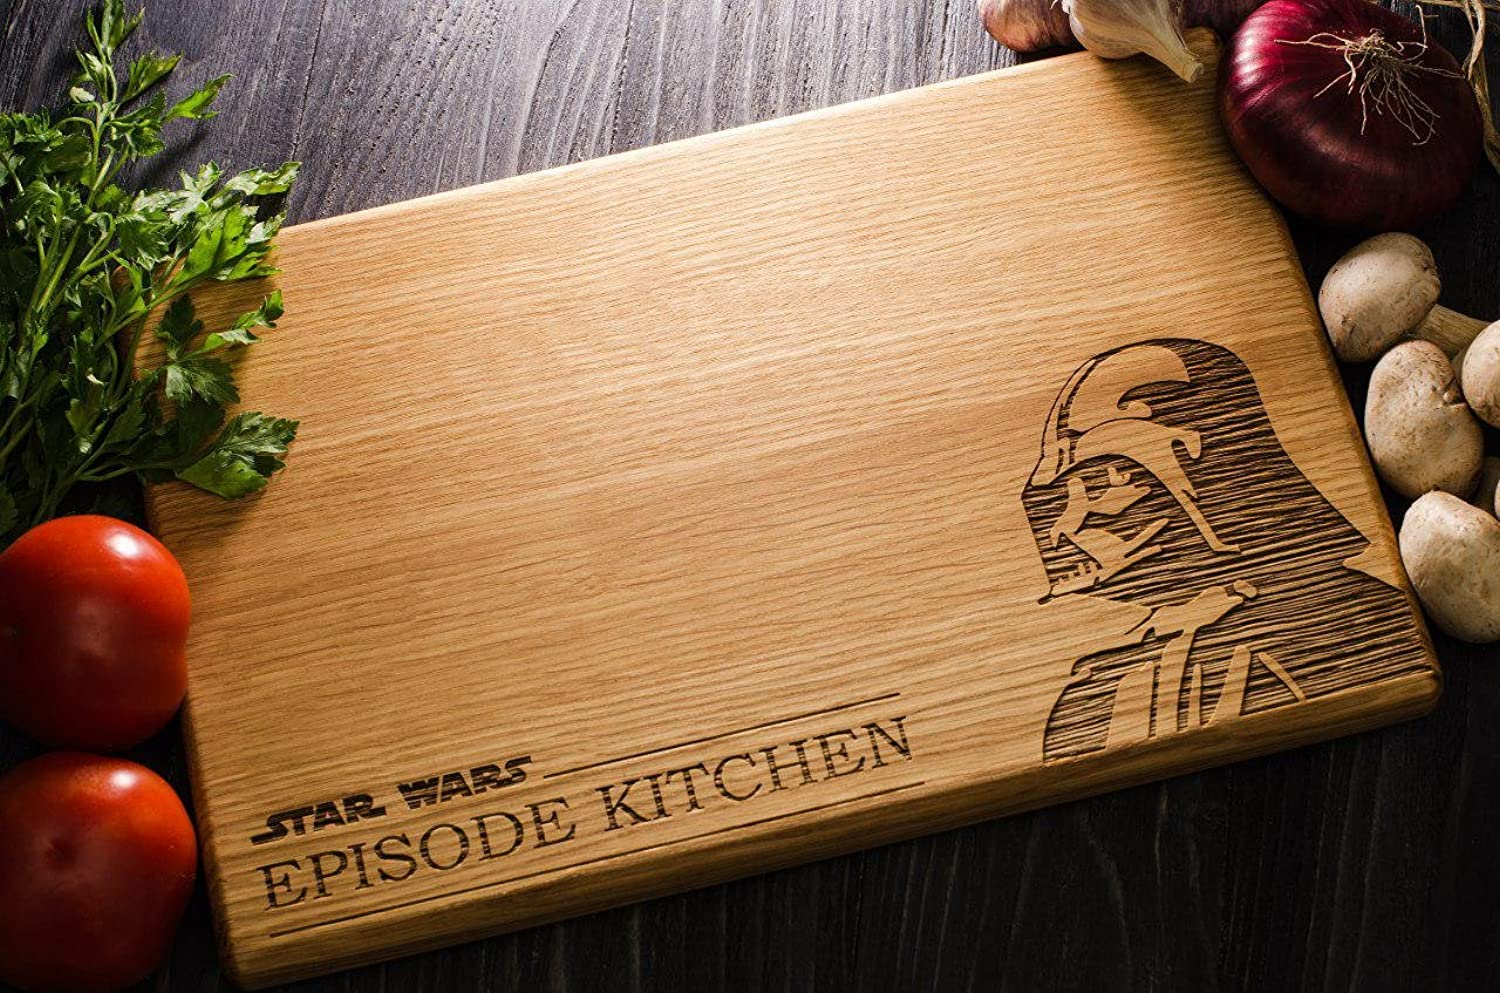 Star Wars Darth Vader EPISODE KITCHEN Personalized Engraved Cutting Board - Girlfriend gift Wedding Gift Anniversary Gifts Housewarming Gift (9.8 x 13.8 inch) star01st